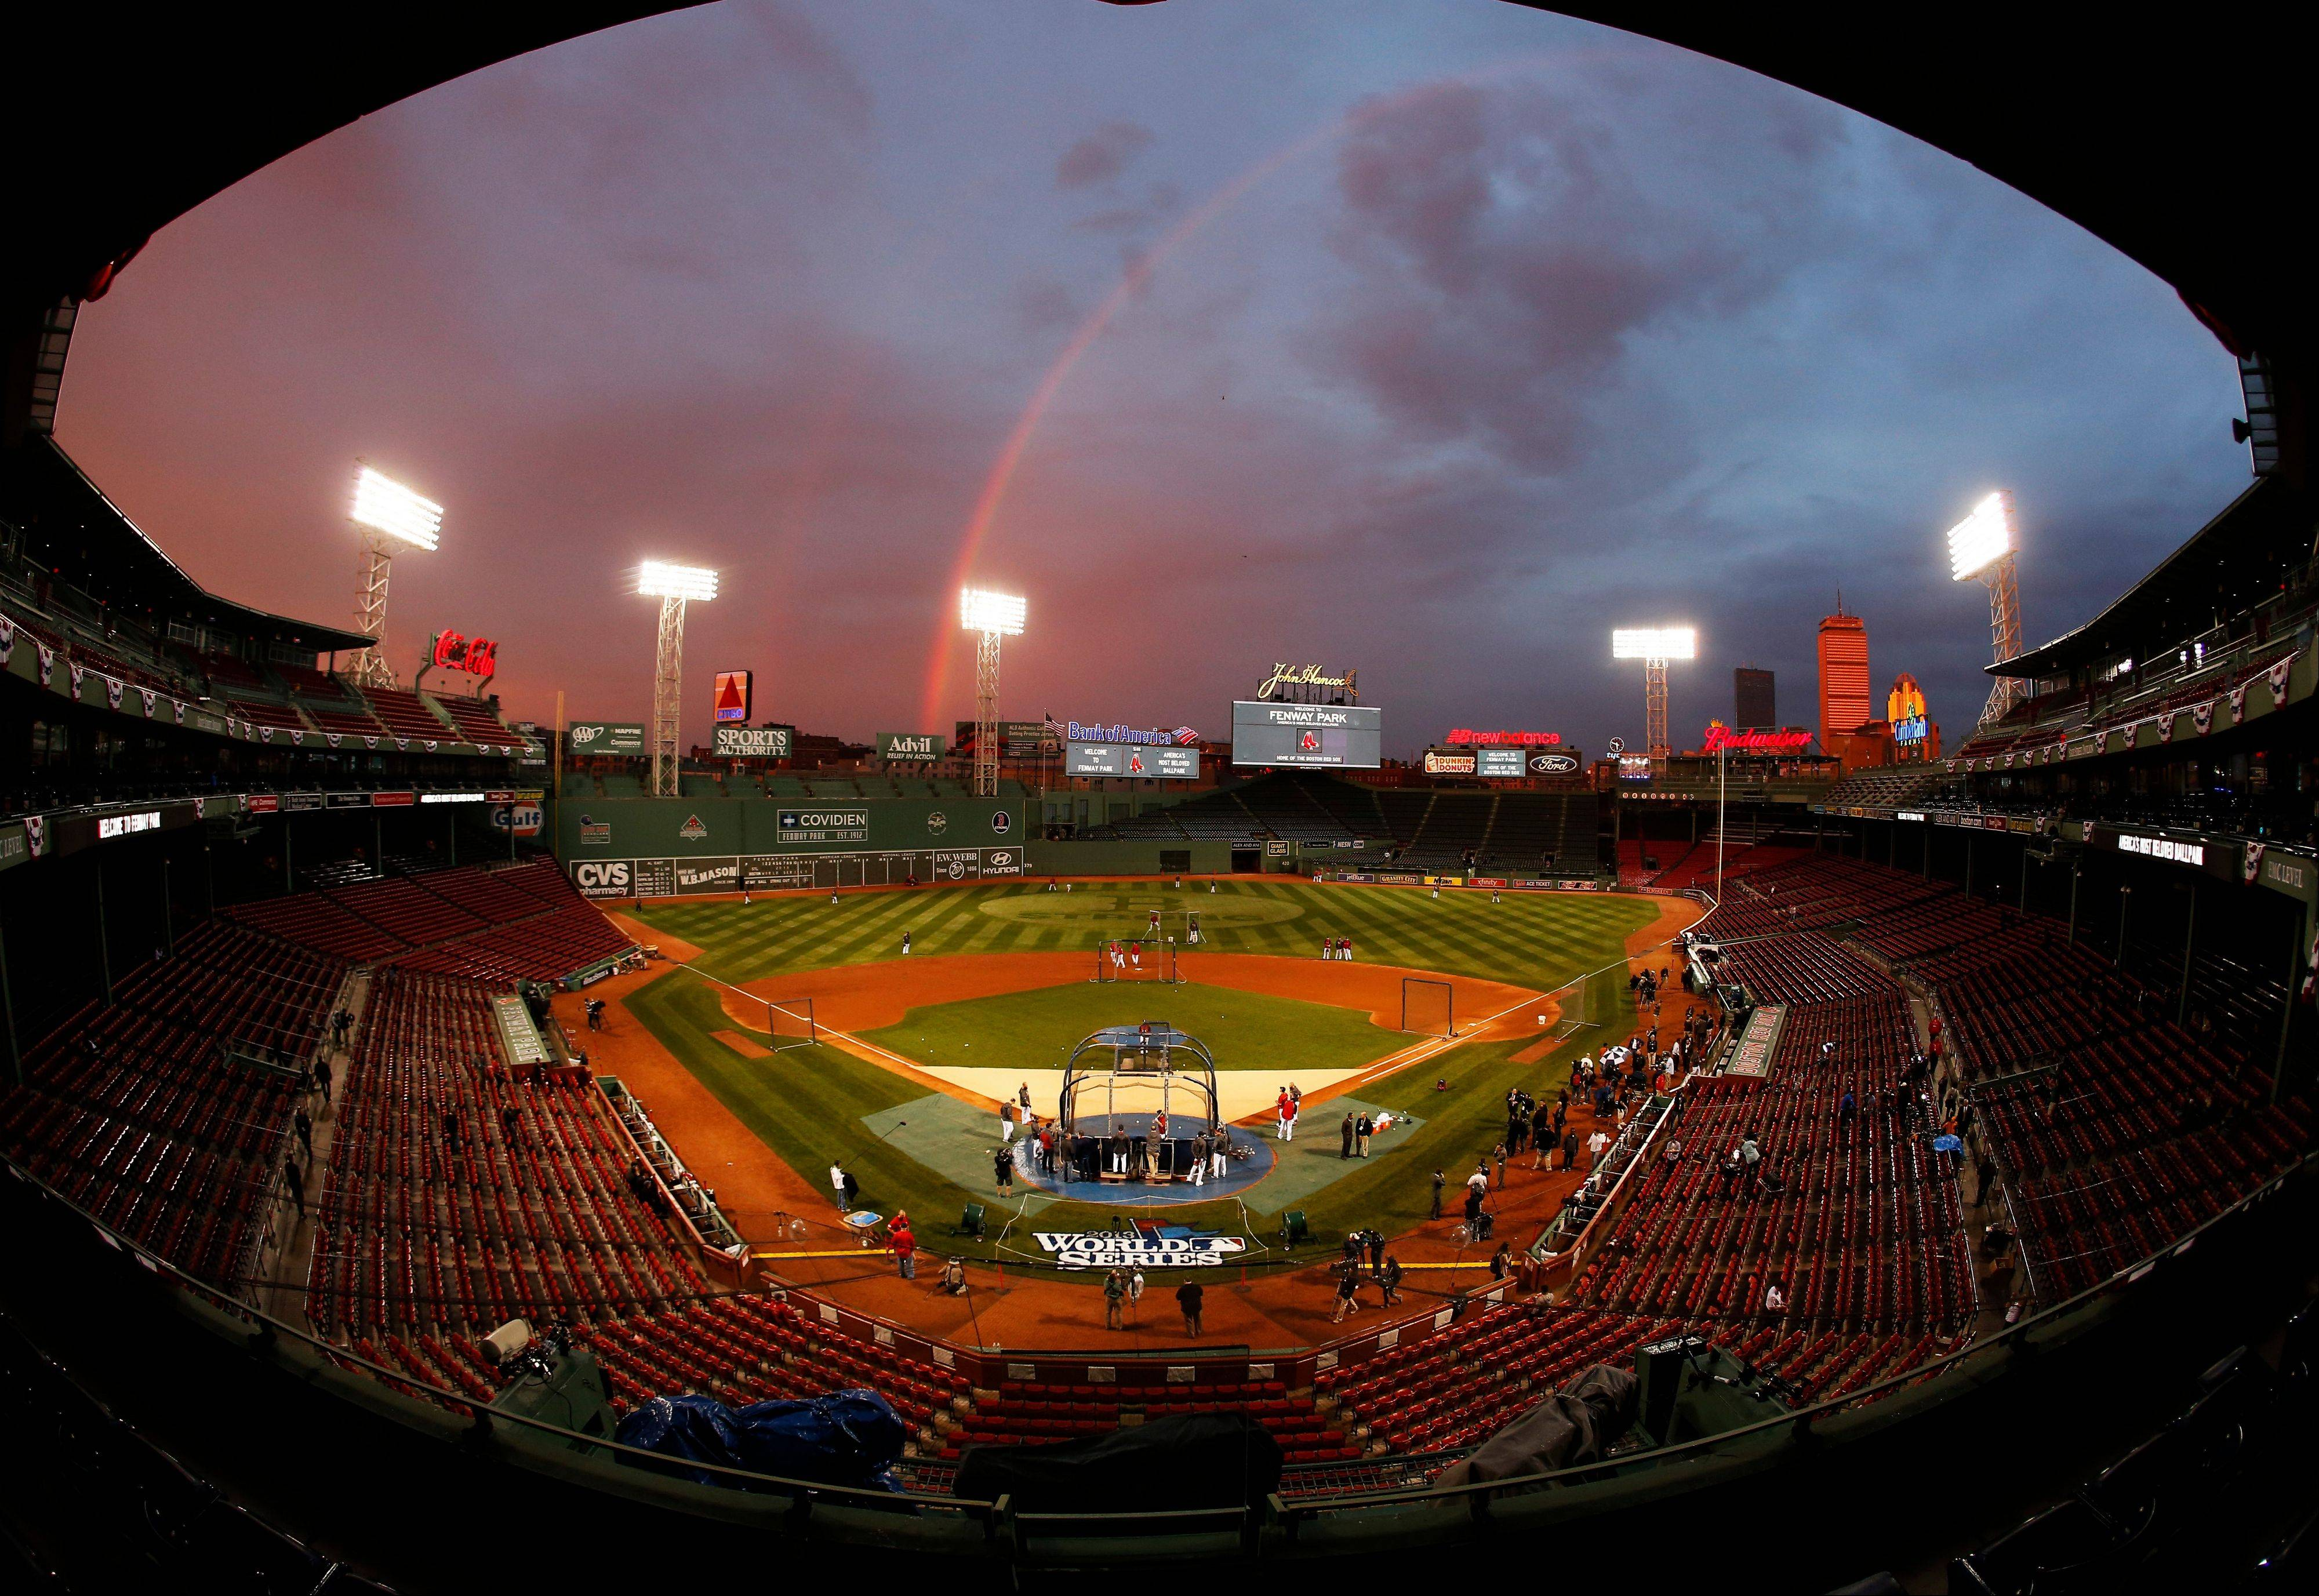 Ithis image taken with a fisheye lens, Boston Red Sox players take batting practice as a rainbow appears in the sky above Fenway Park Tuesday in Boston. The Red Sox are scheduled to host the St. Louis Cardinals in Game 1 of baseball's World Series on Wednesday.